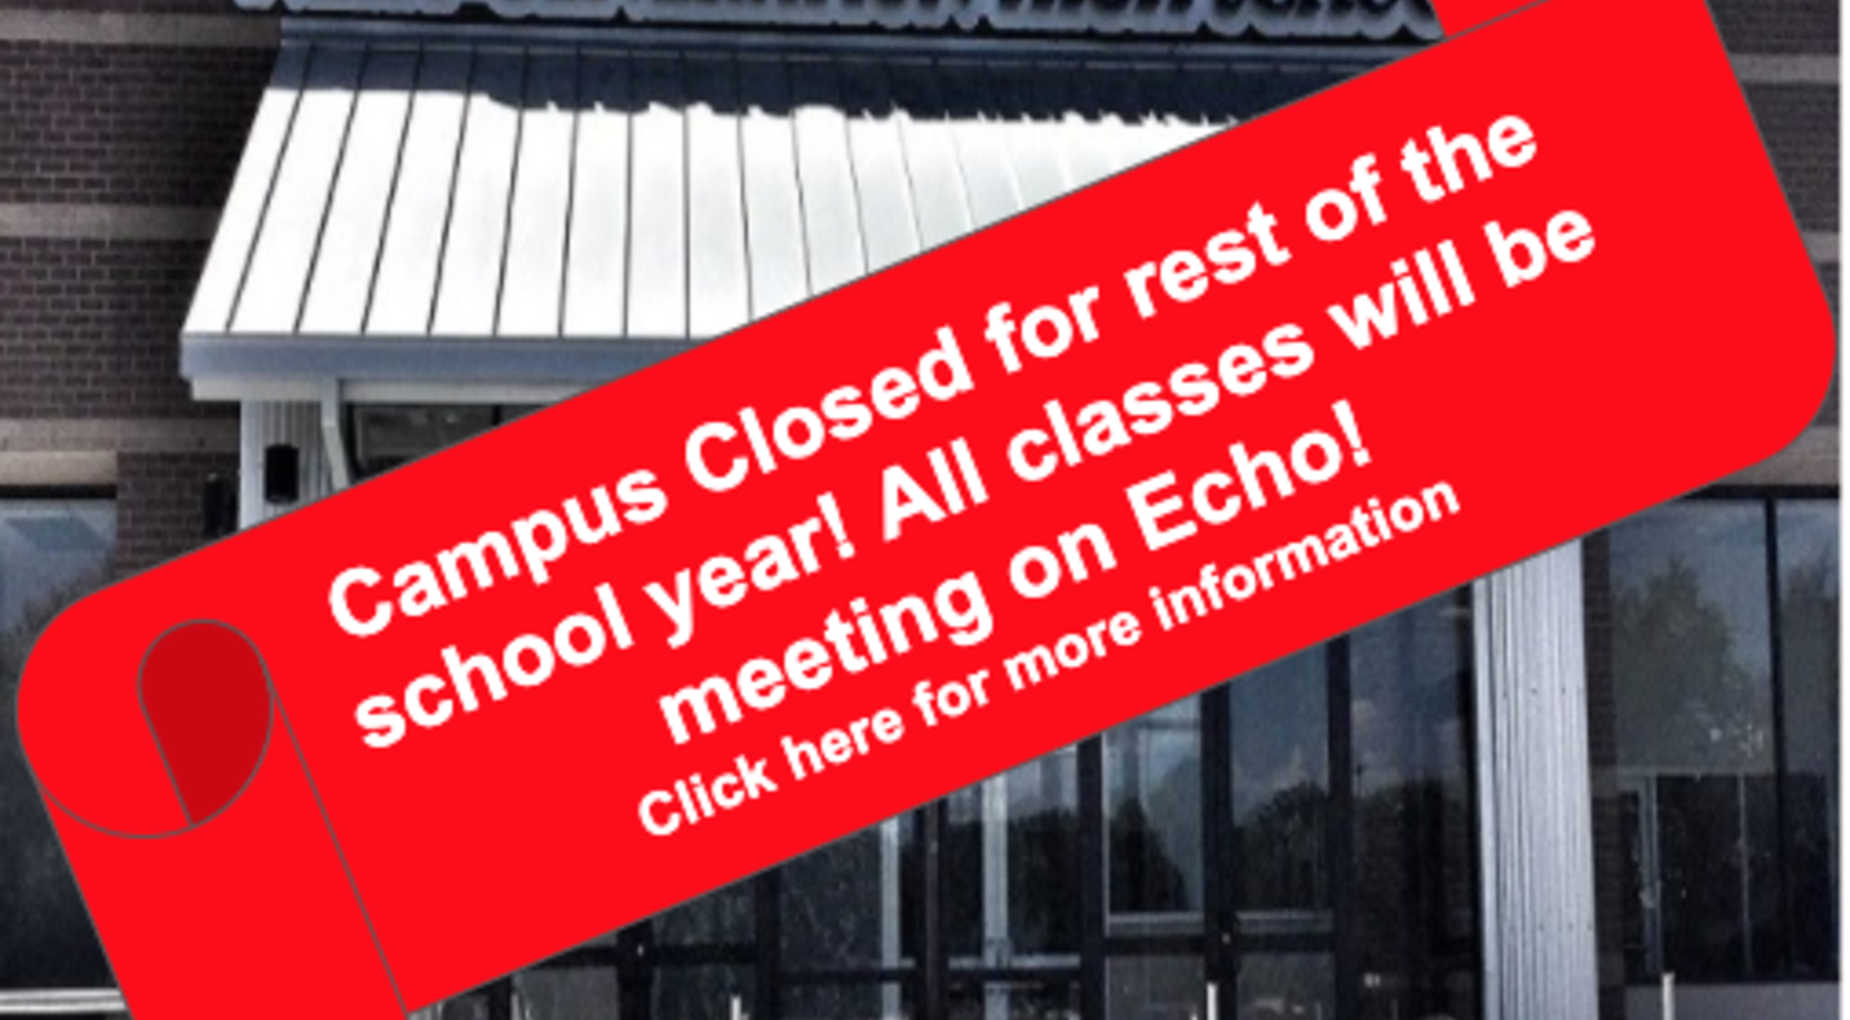 Campus Closed for remainder of 2019-2020 School year. All classes continuing online